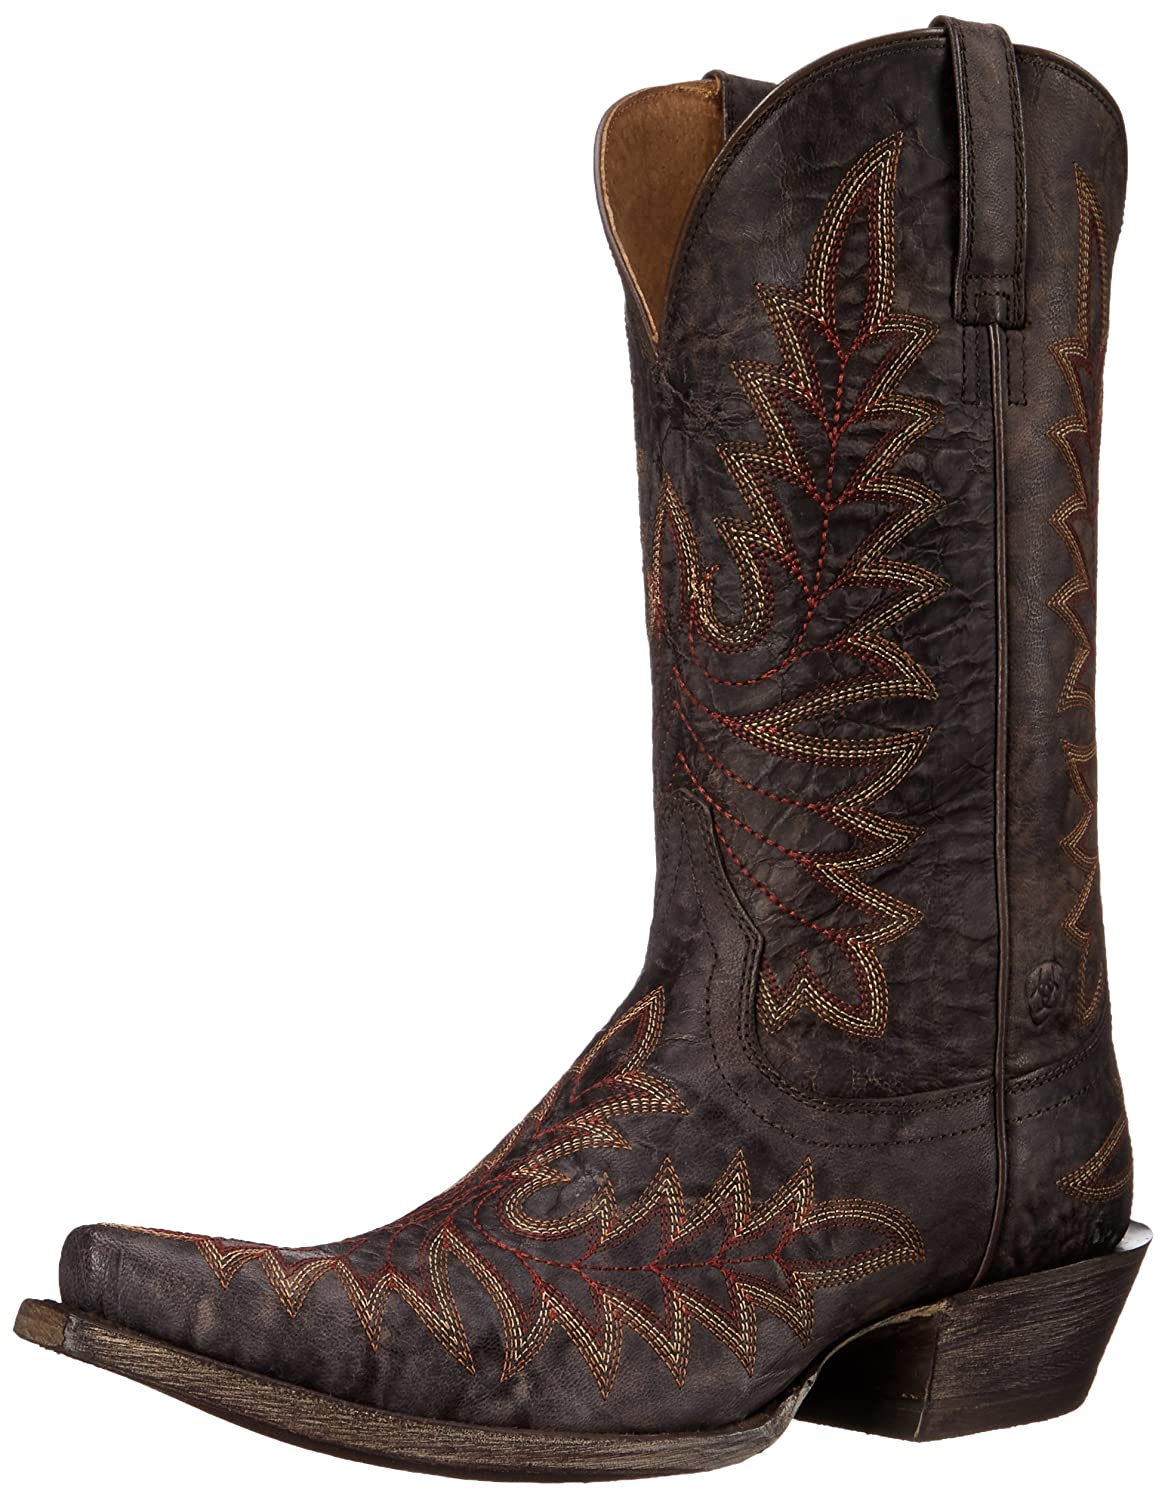 Ariat Women's Brooklyn Western Cowboy Boot B013J2B6YY 6 B(M) US|Coffee